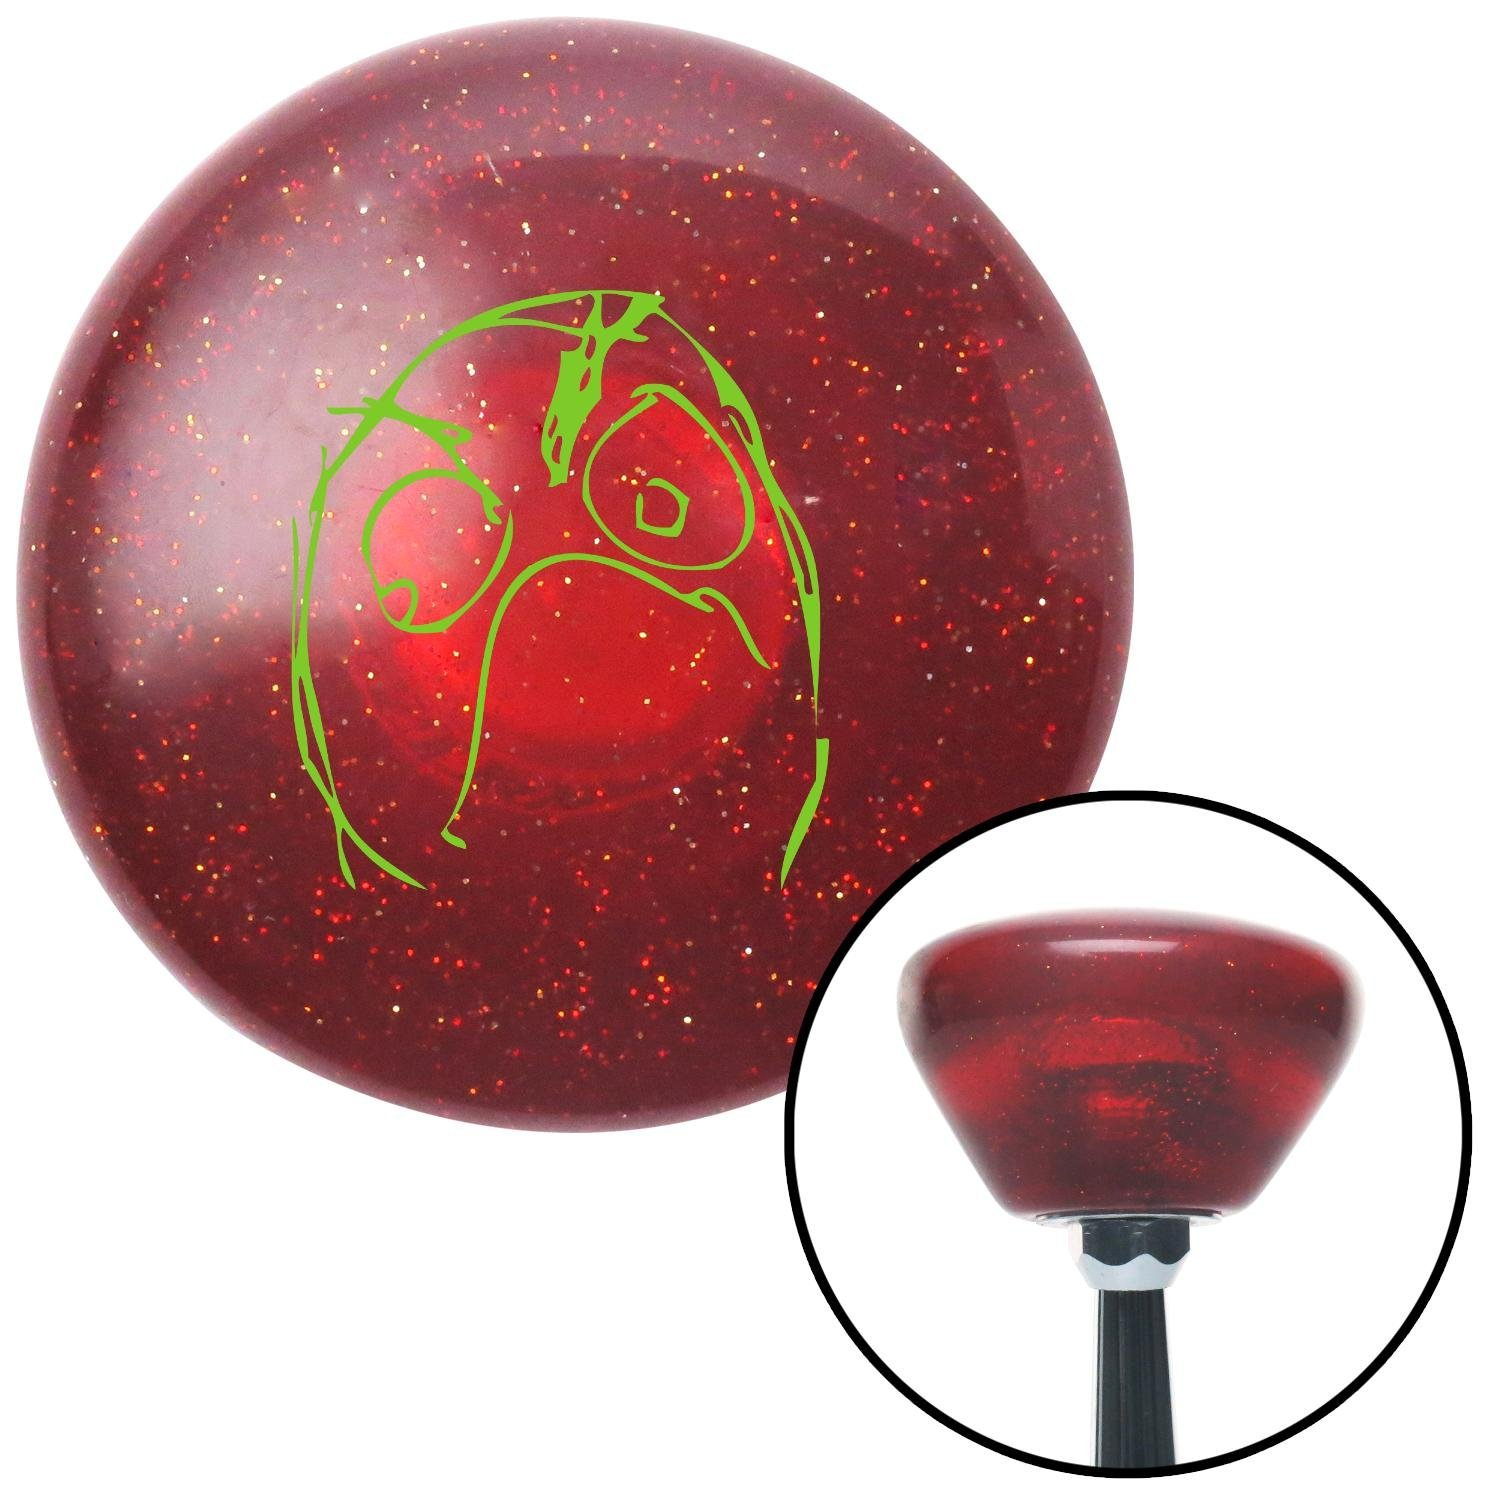 Green Angry Meme American Shifter 194795 Red Retro Metal Flake Shift Knob with M16 x 1.5 Insert